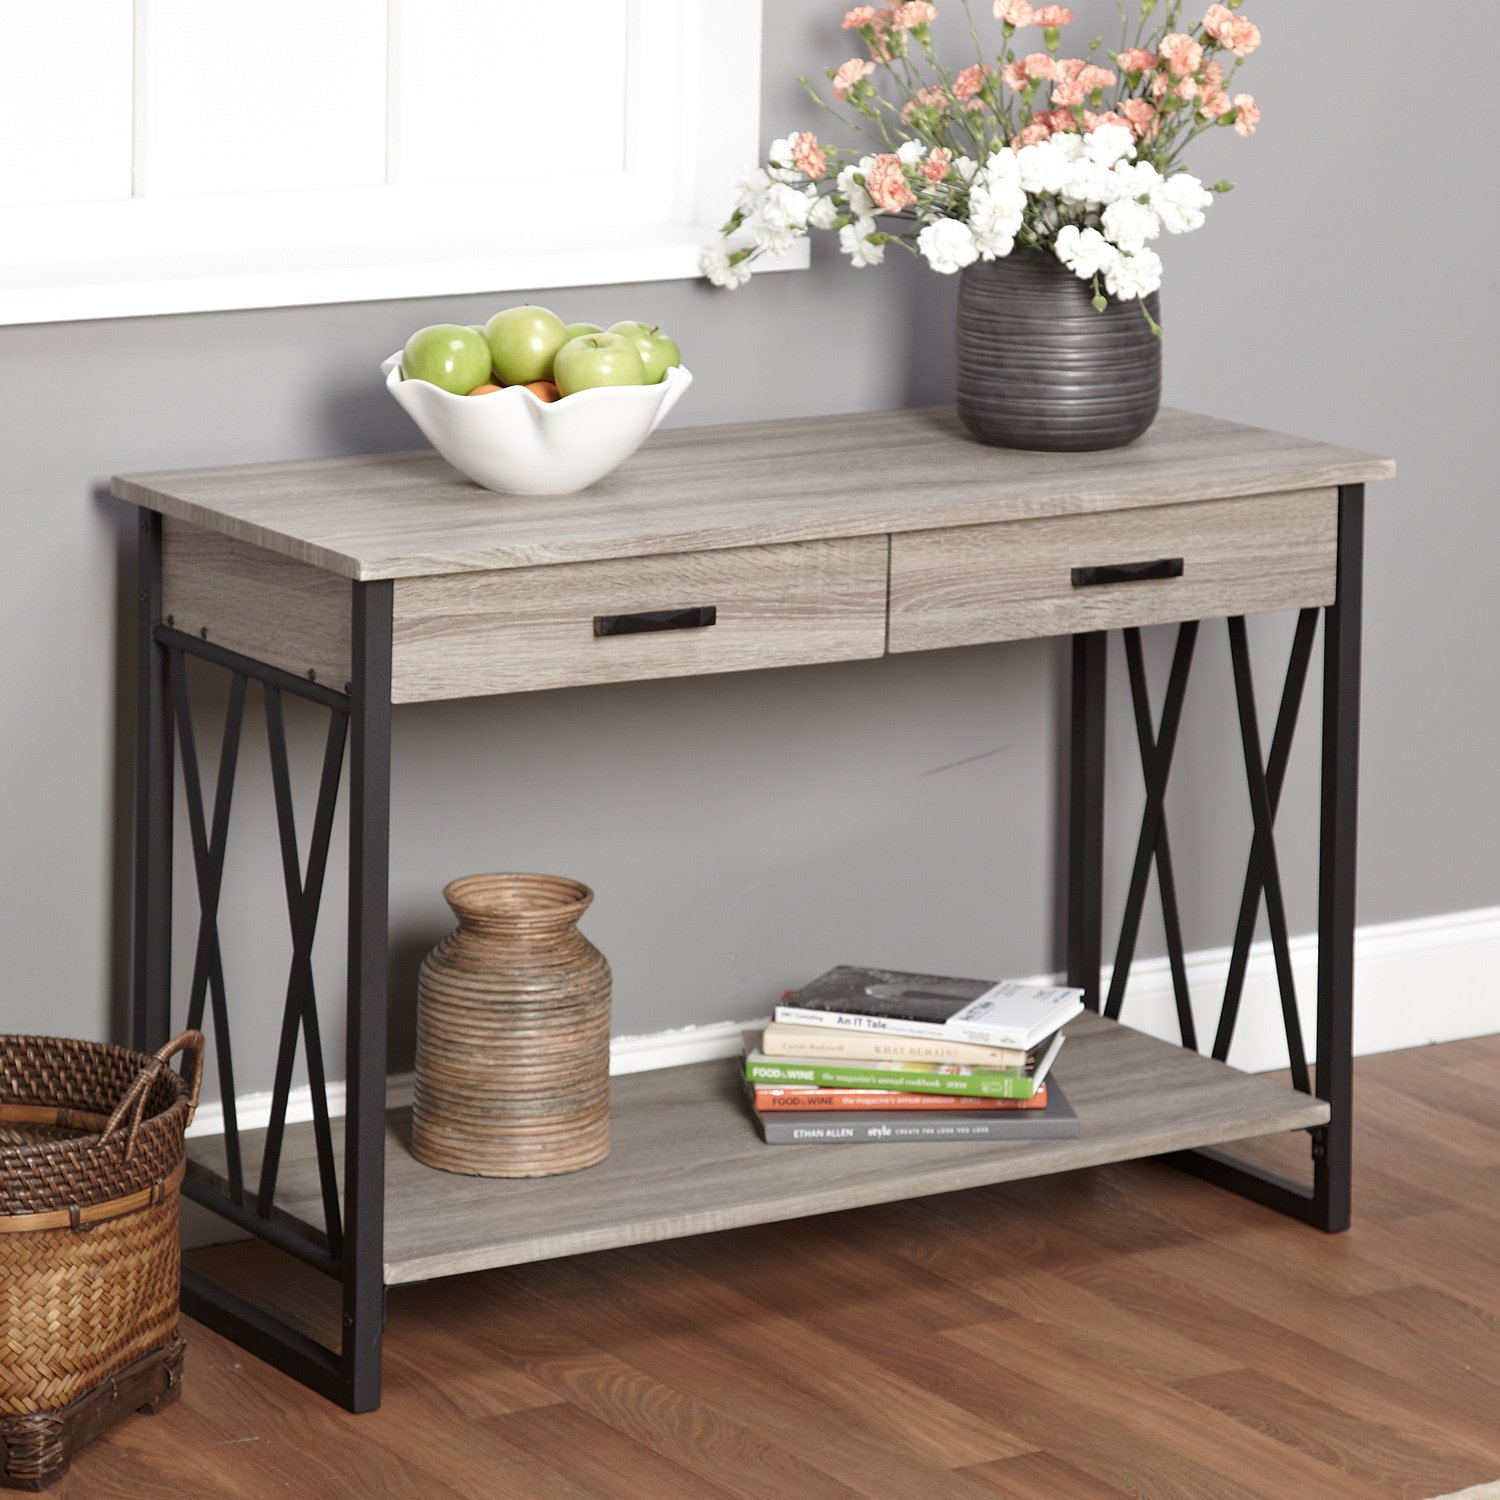 Console Sofa Table Living Home Furniture Decor Room Hallway Accent Entryway W